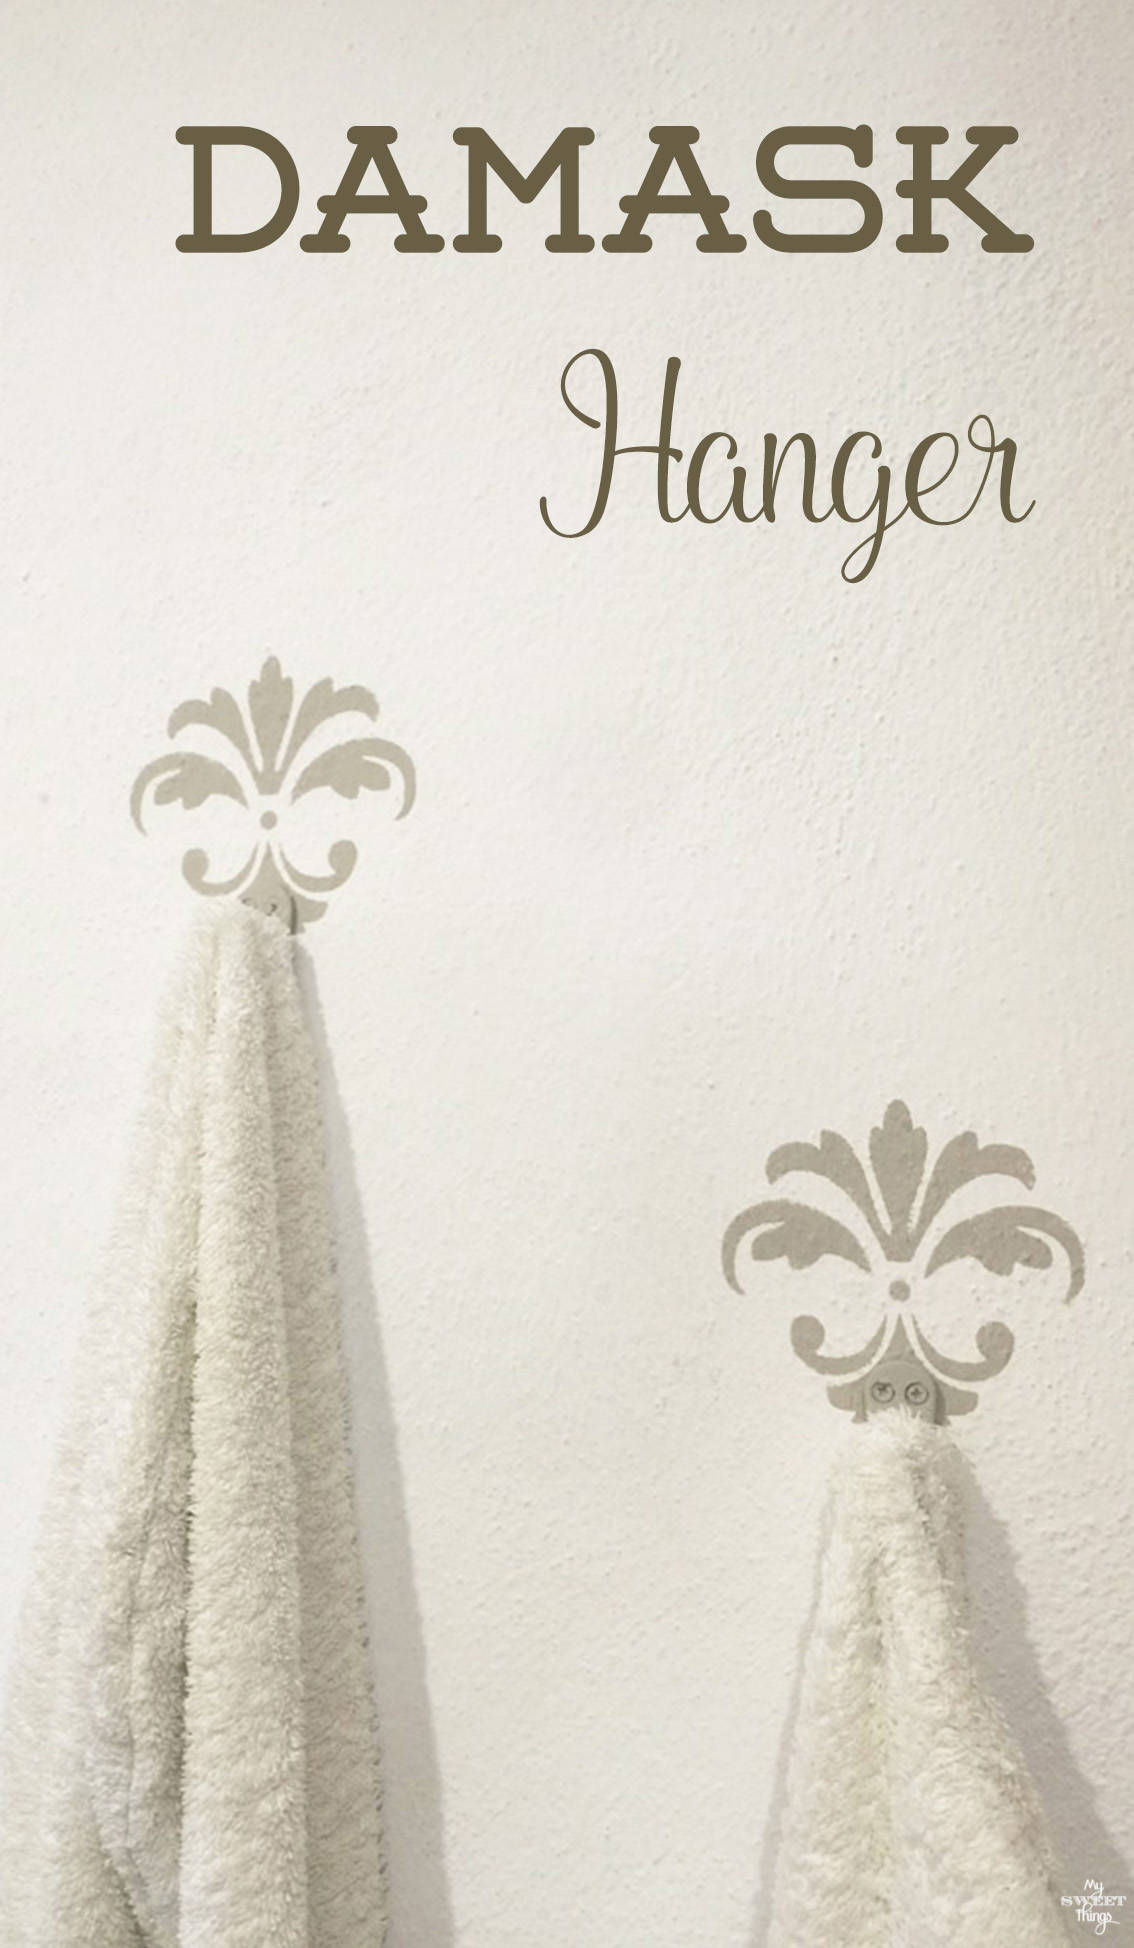 DIY damask hangers made with some paint and stencils